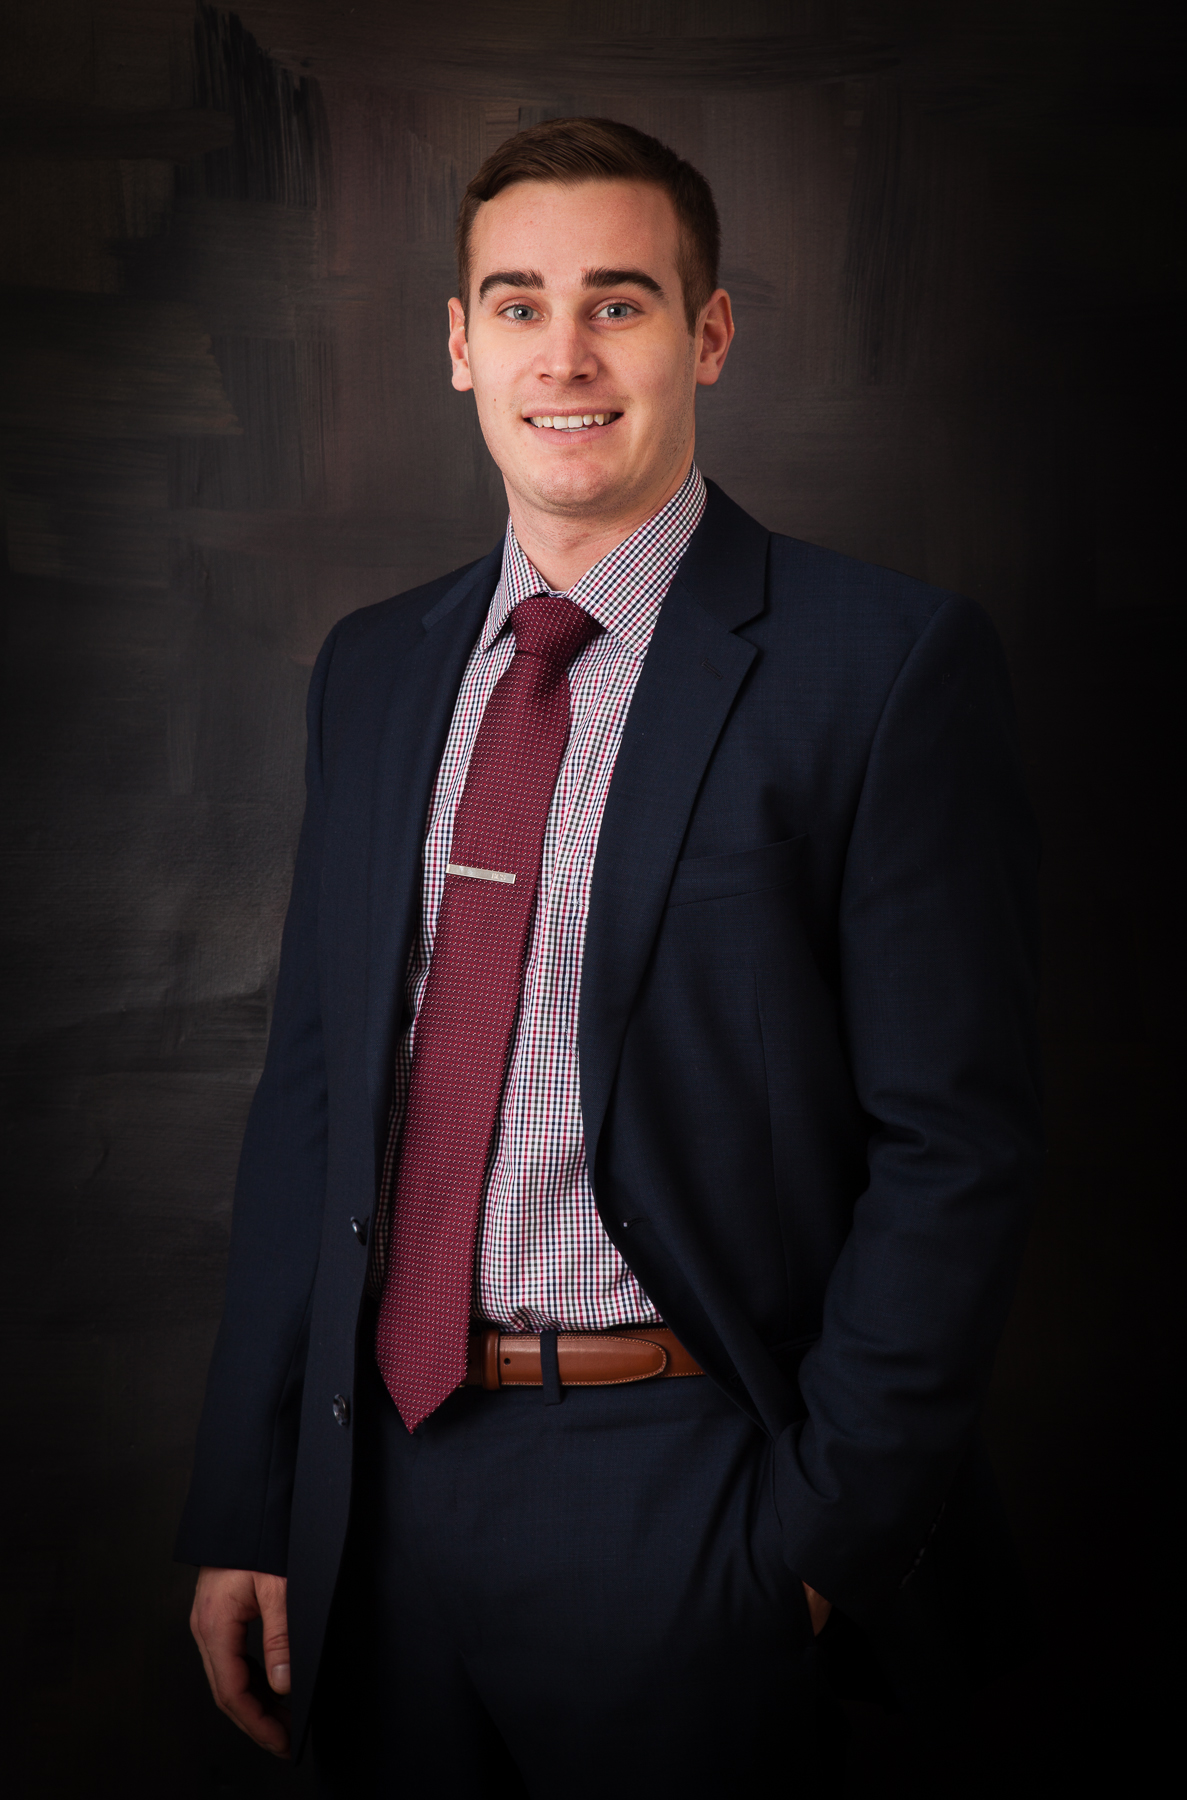 Brody Schoen, financial advisor Indianapolis IN